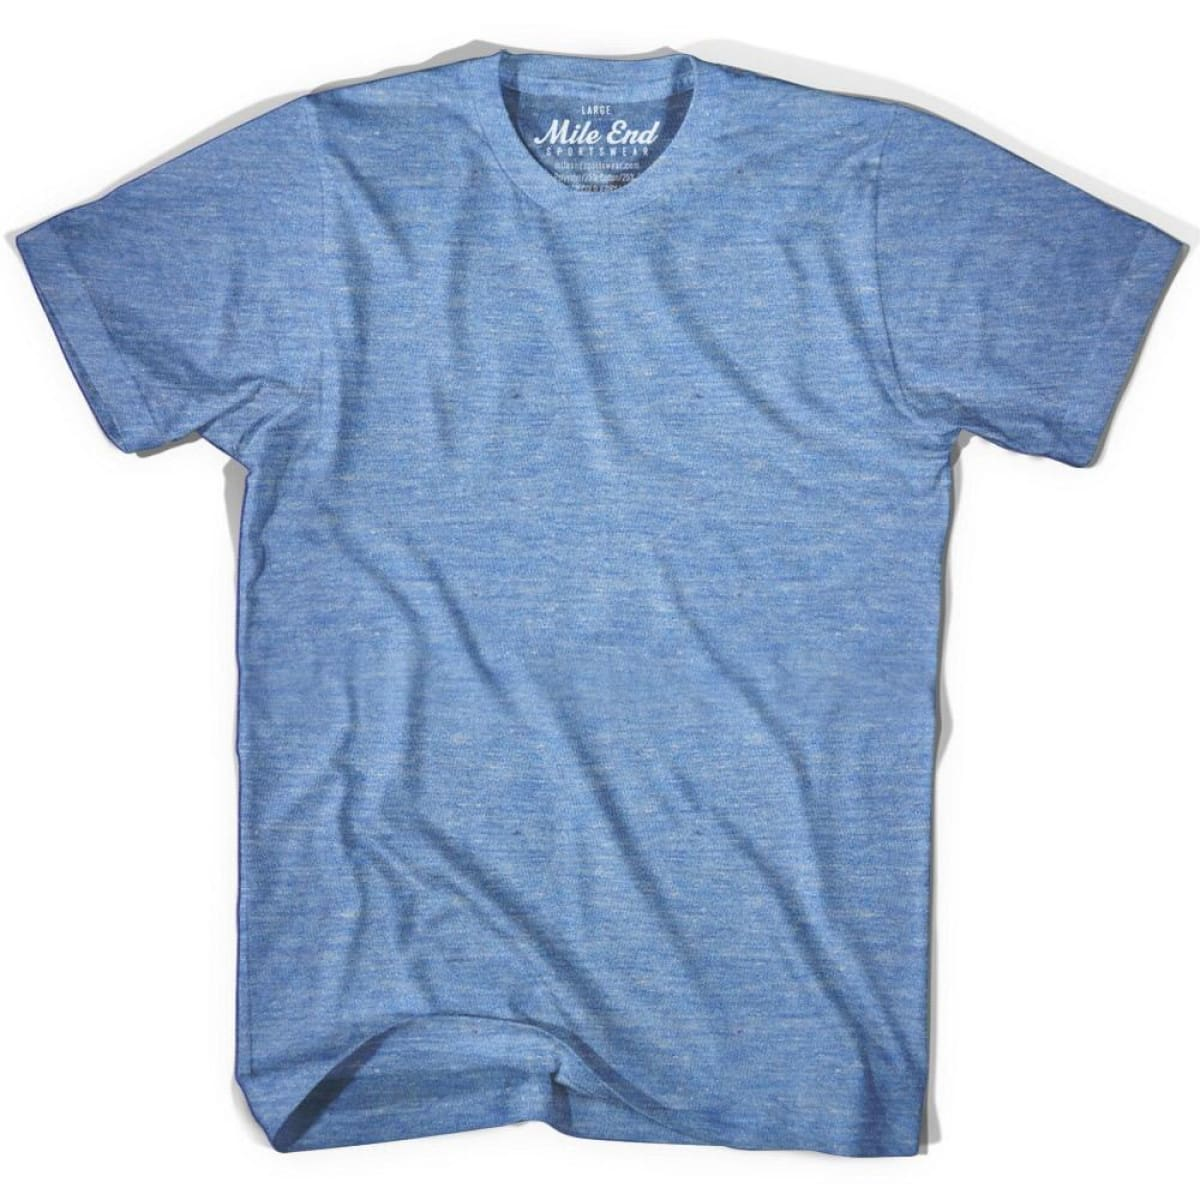 Mile End Athletic Blue Blank T-shirt - Athetic blue / Adult X-Small - Mile End City